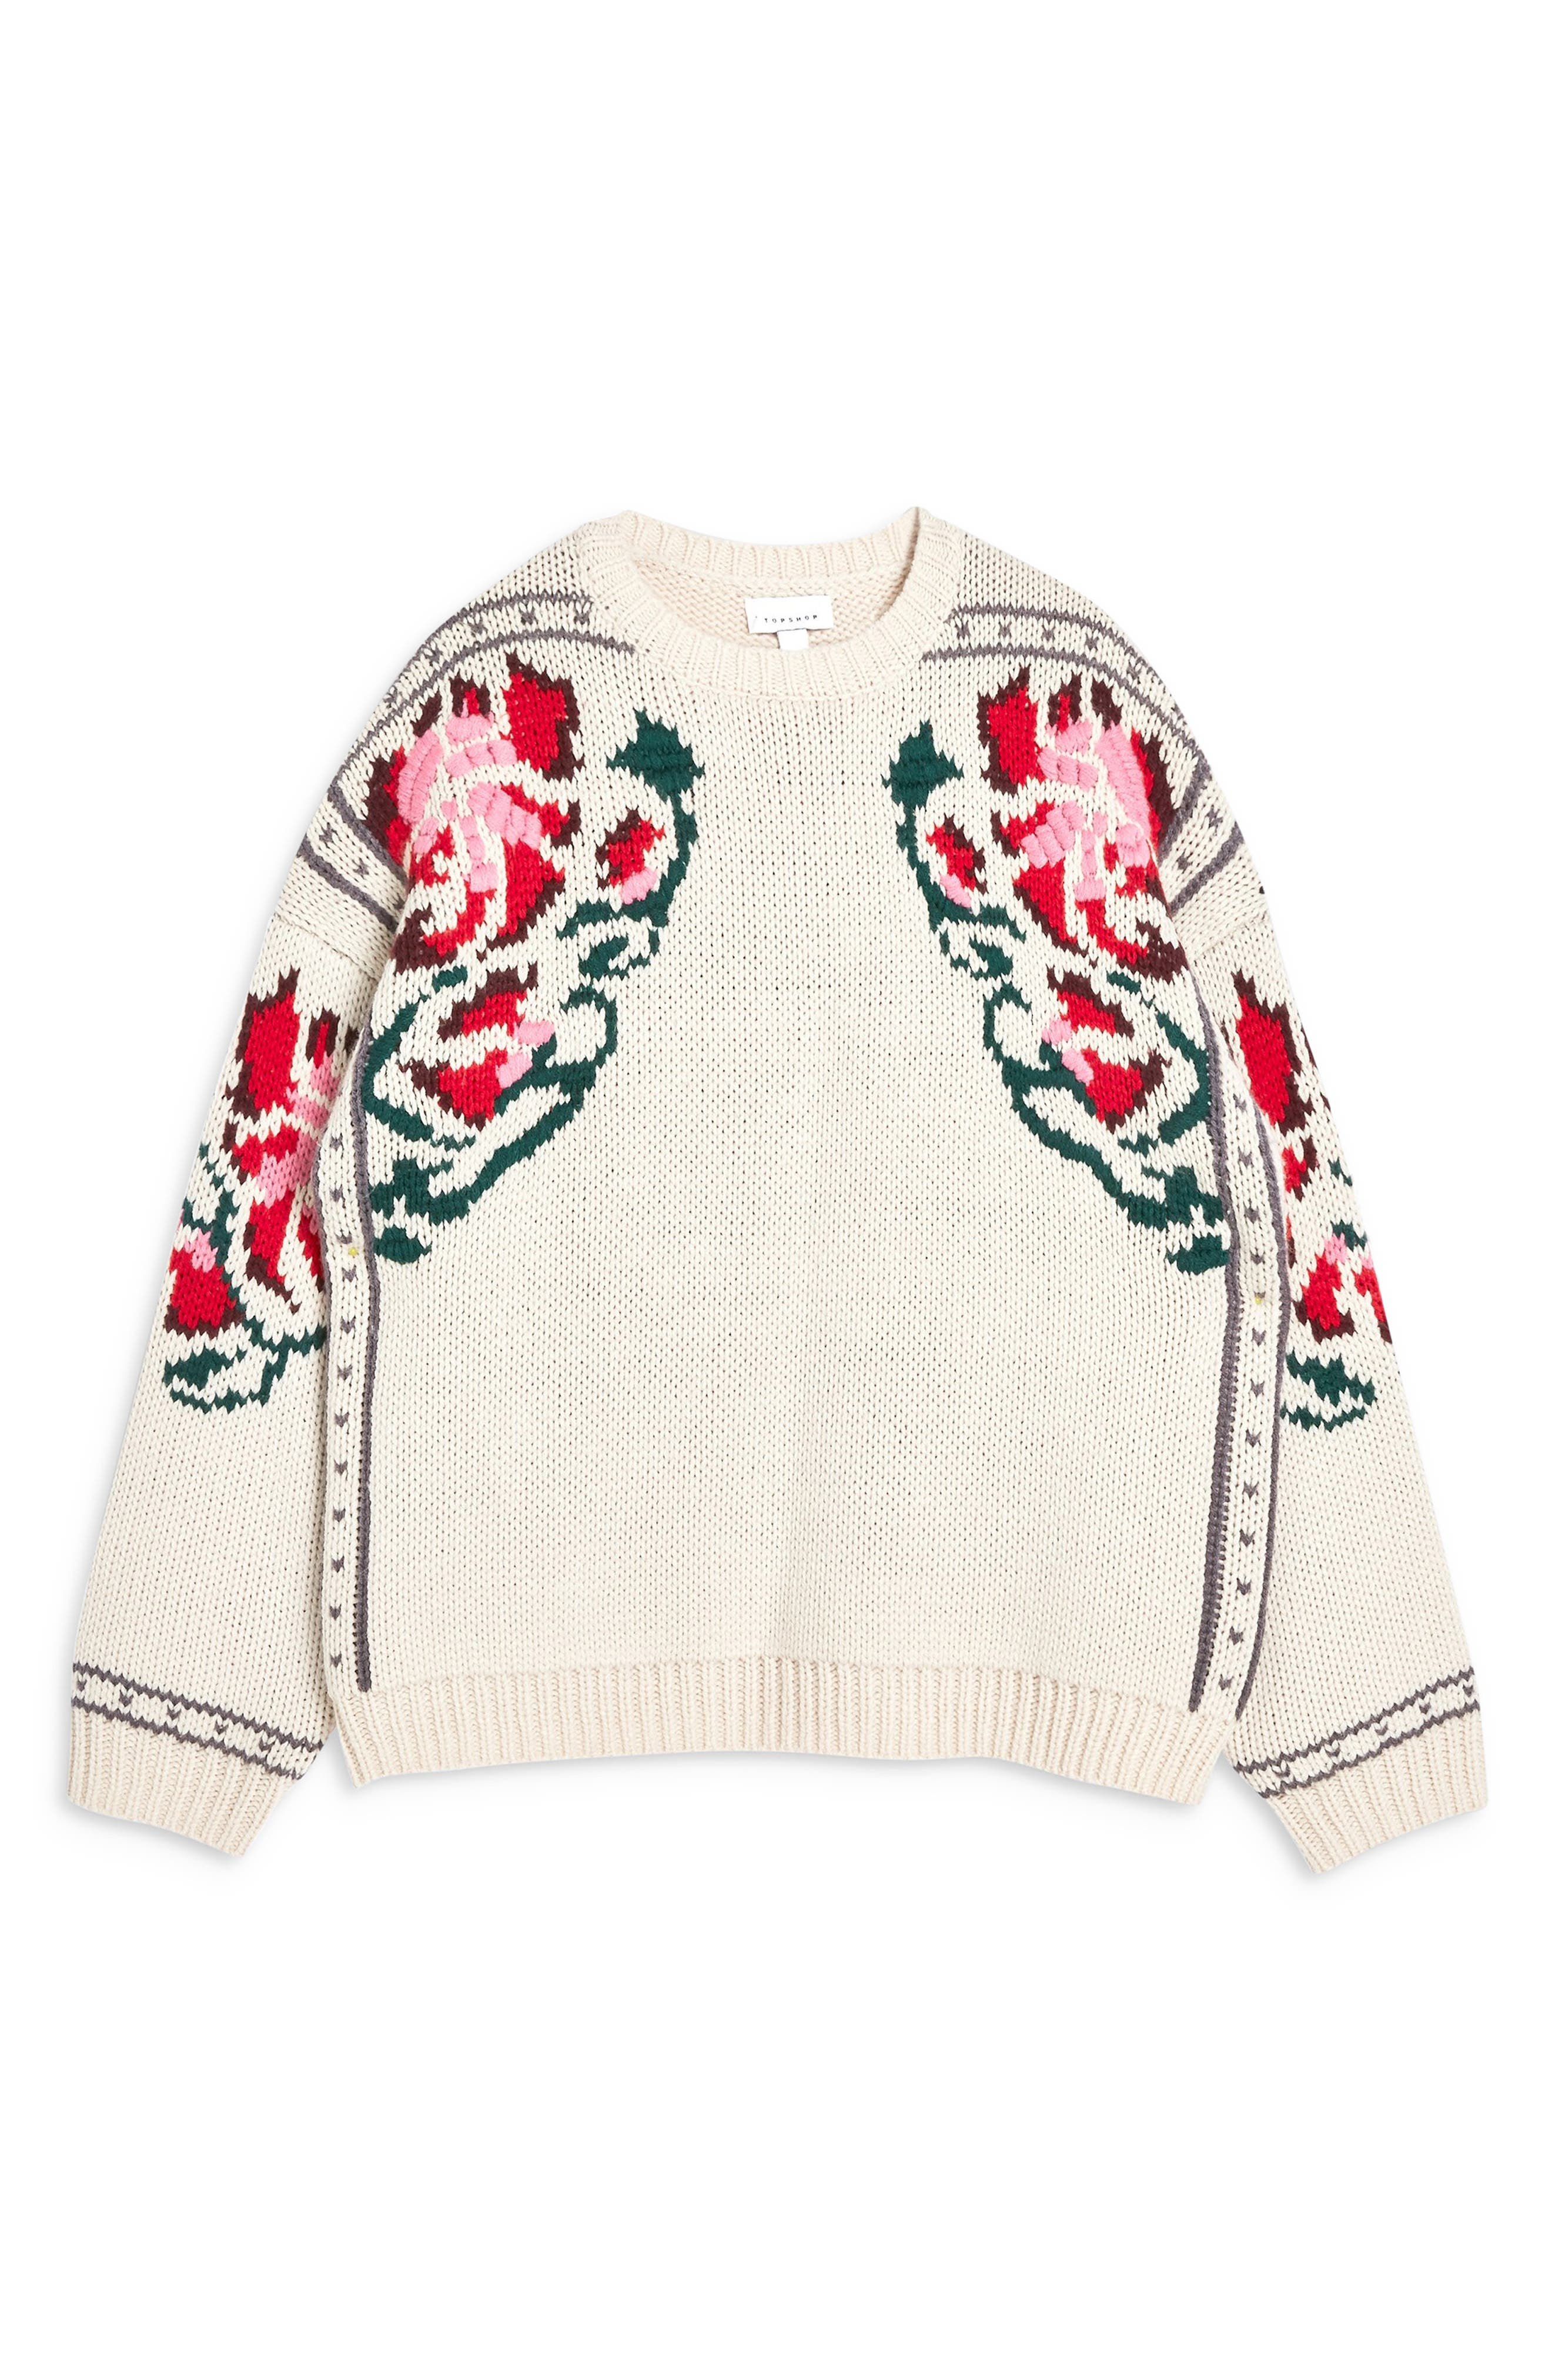 Floral Border Embroidered Sweater,                             Alternate thumbnail 4, color,                             IVORY MULTI